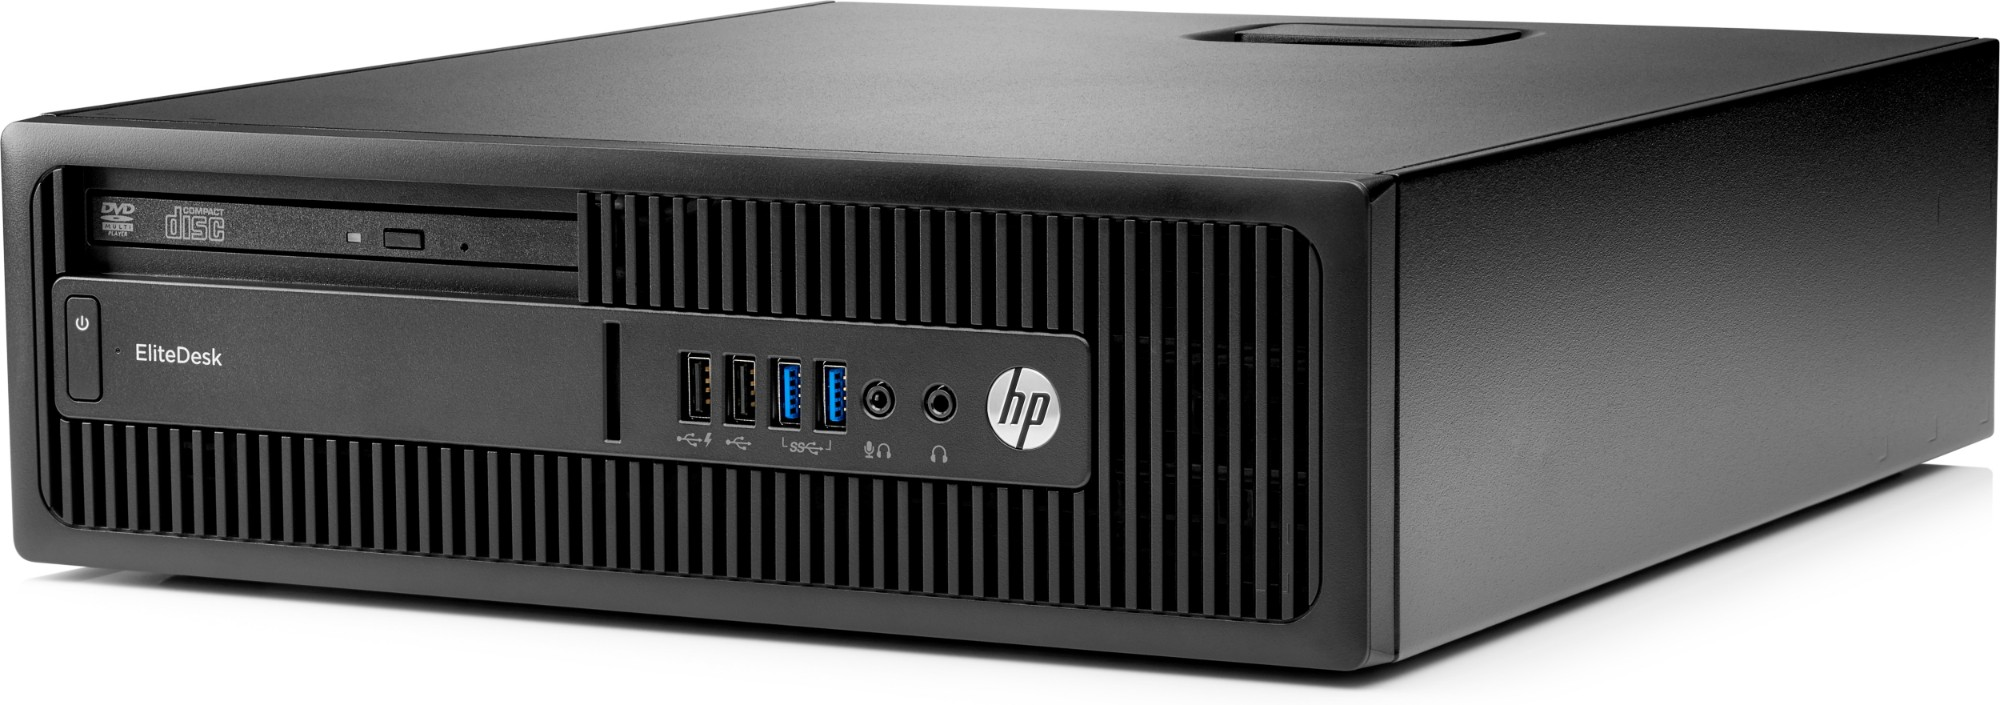 Hp Elitedesk 705 G3 Small Form Factor Pc